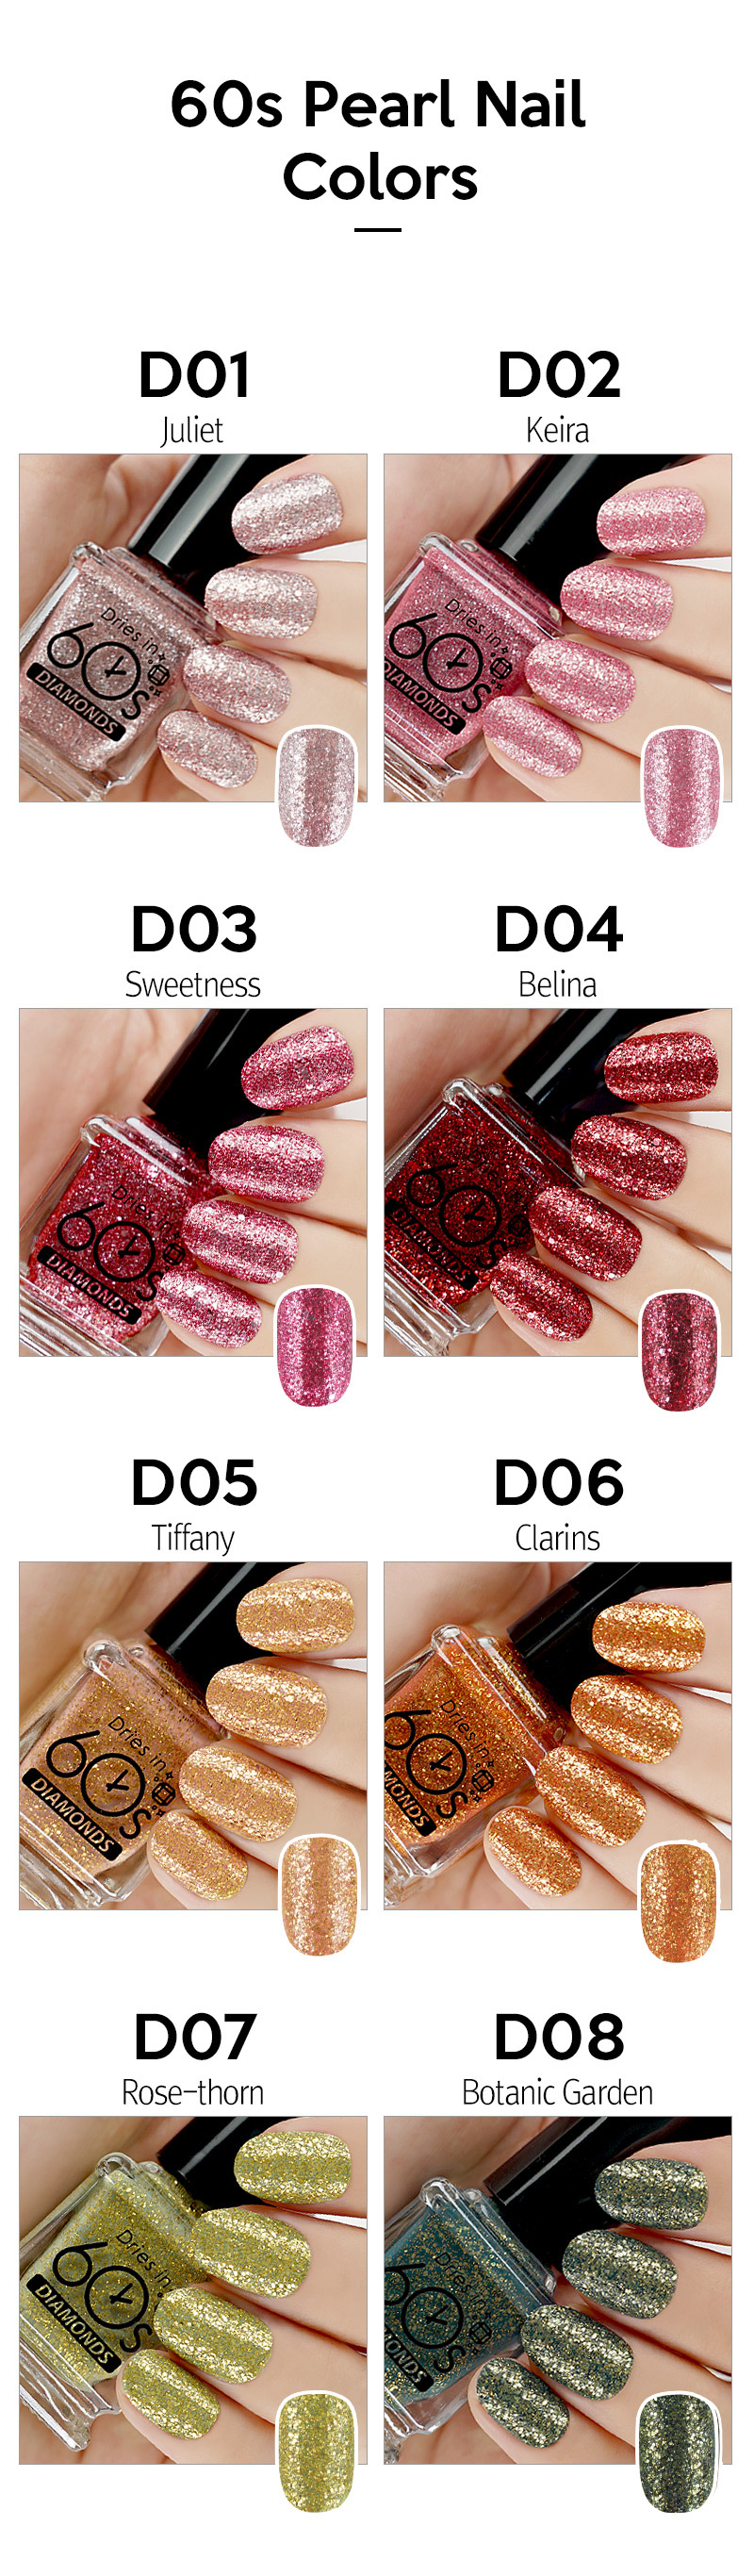 60 Seconds Nail Polish - Diamond Pearl Nail Polish Feature